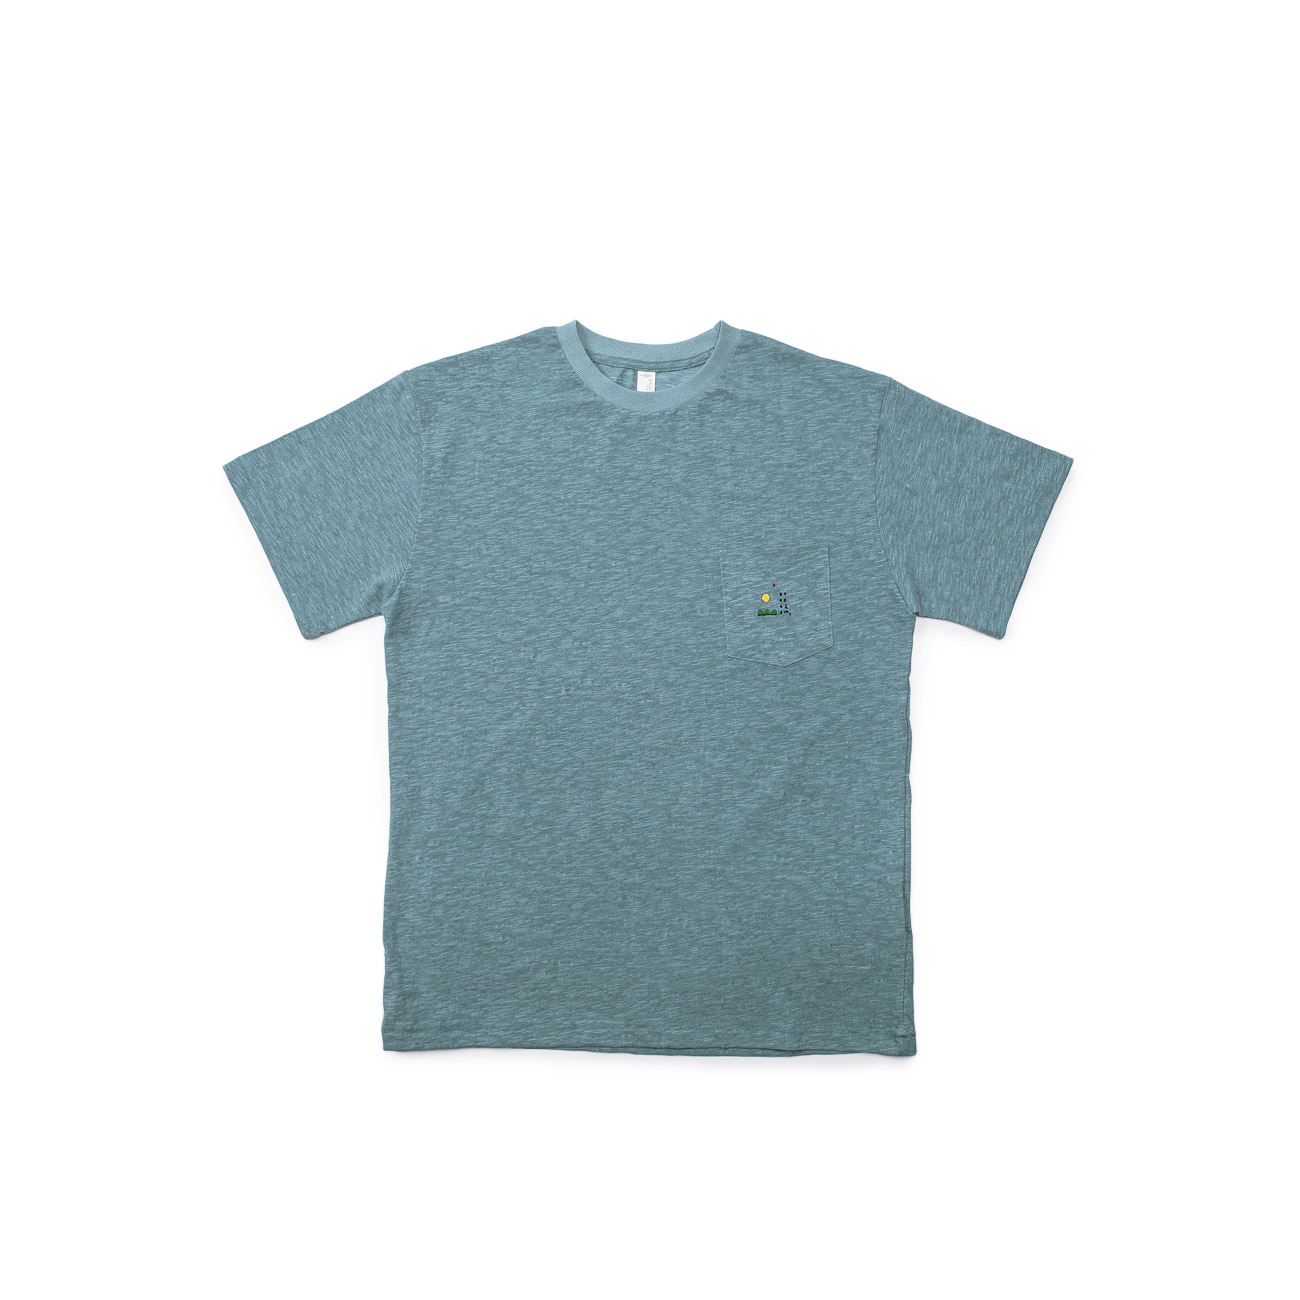 BU x East Oklm Slub Pocket Tee